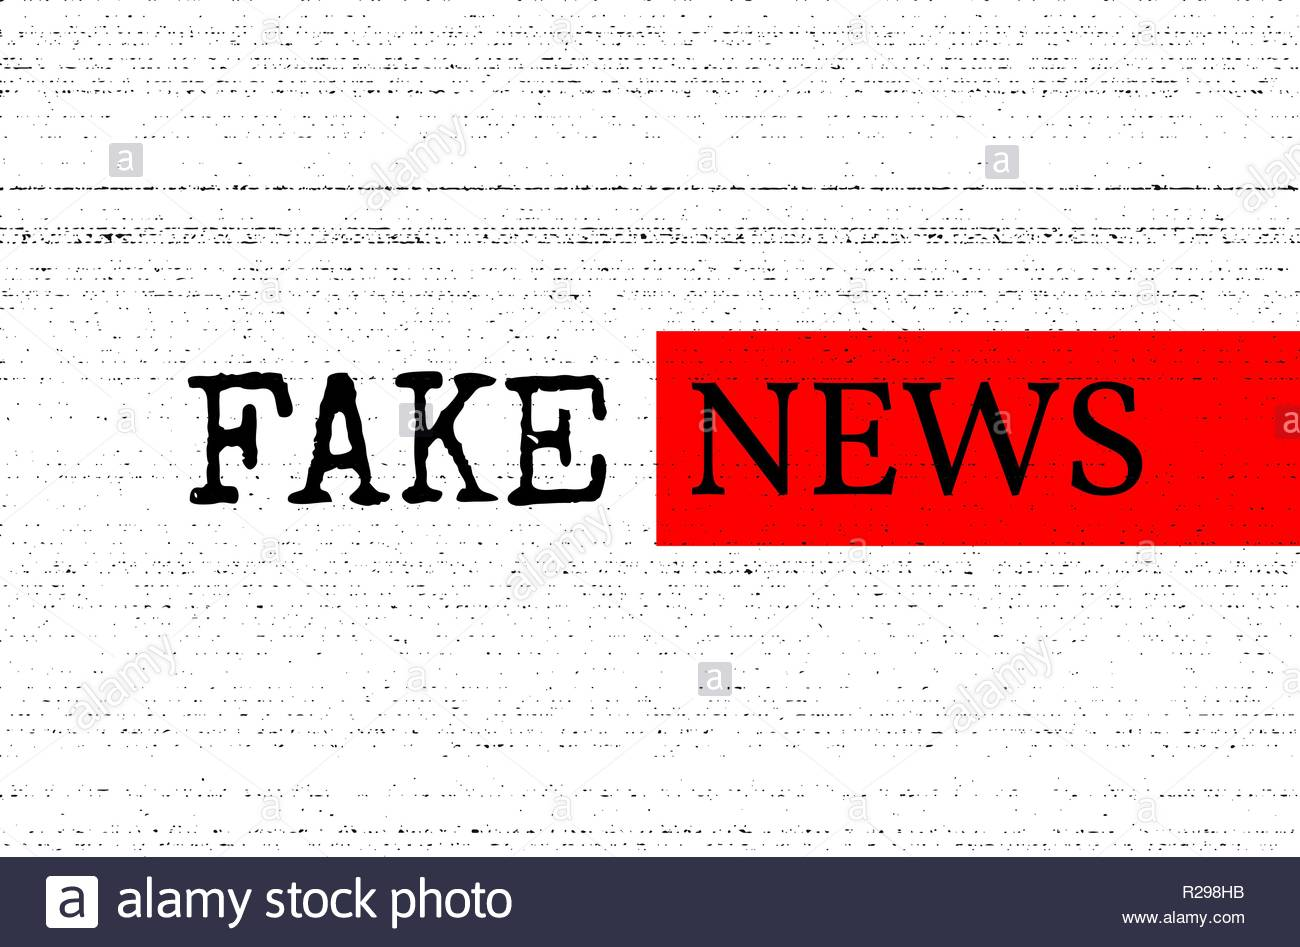 Fake news concept. Red, black and white vector illustration with grunge photocopy texture. Can be used as a banner or background in social media. Stock Vector